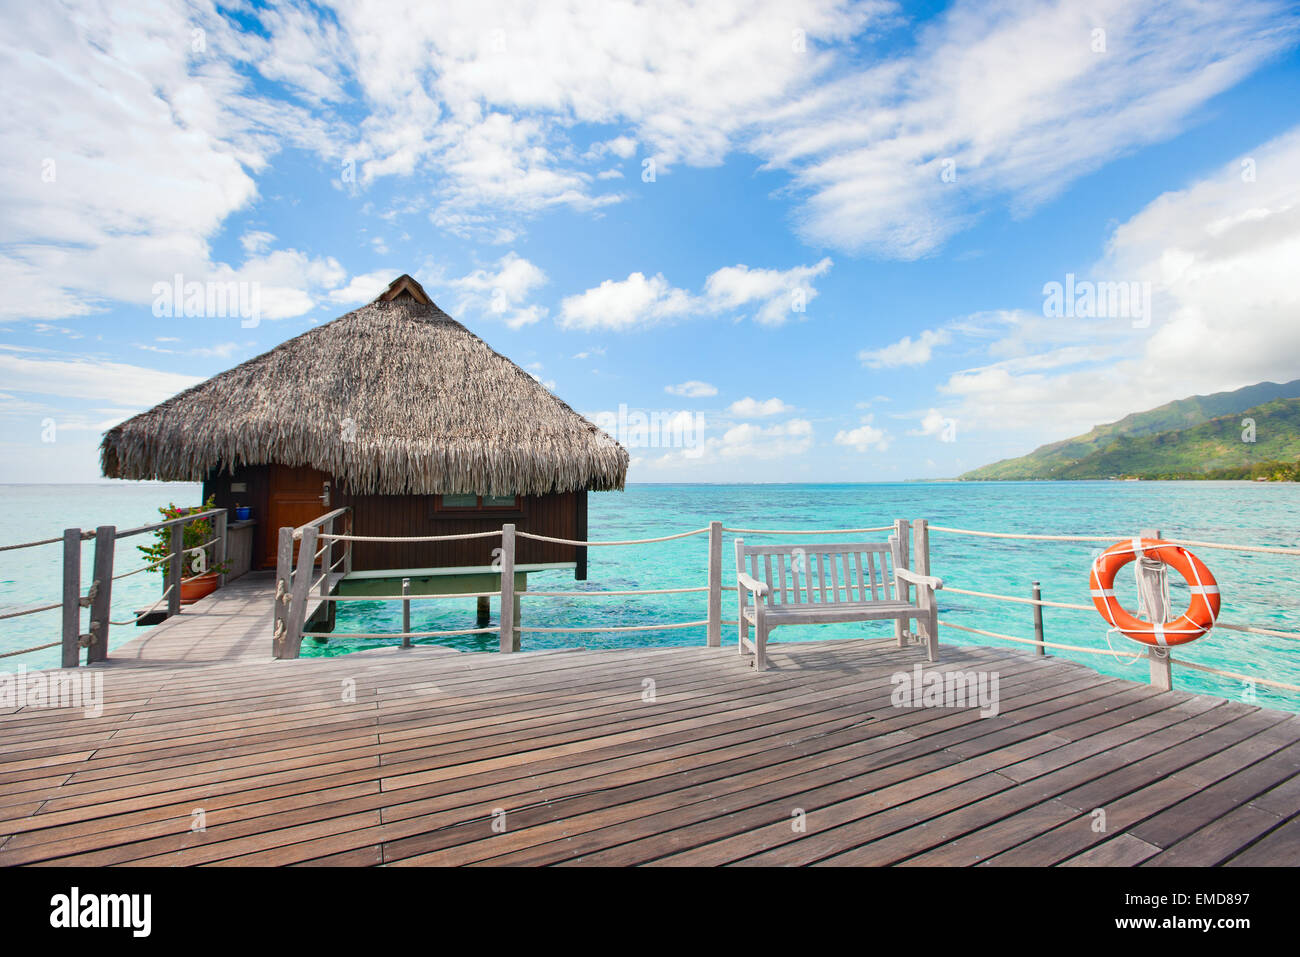 Over water bungalow - Stock Image